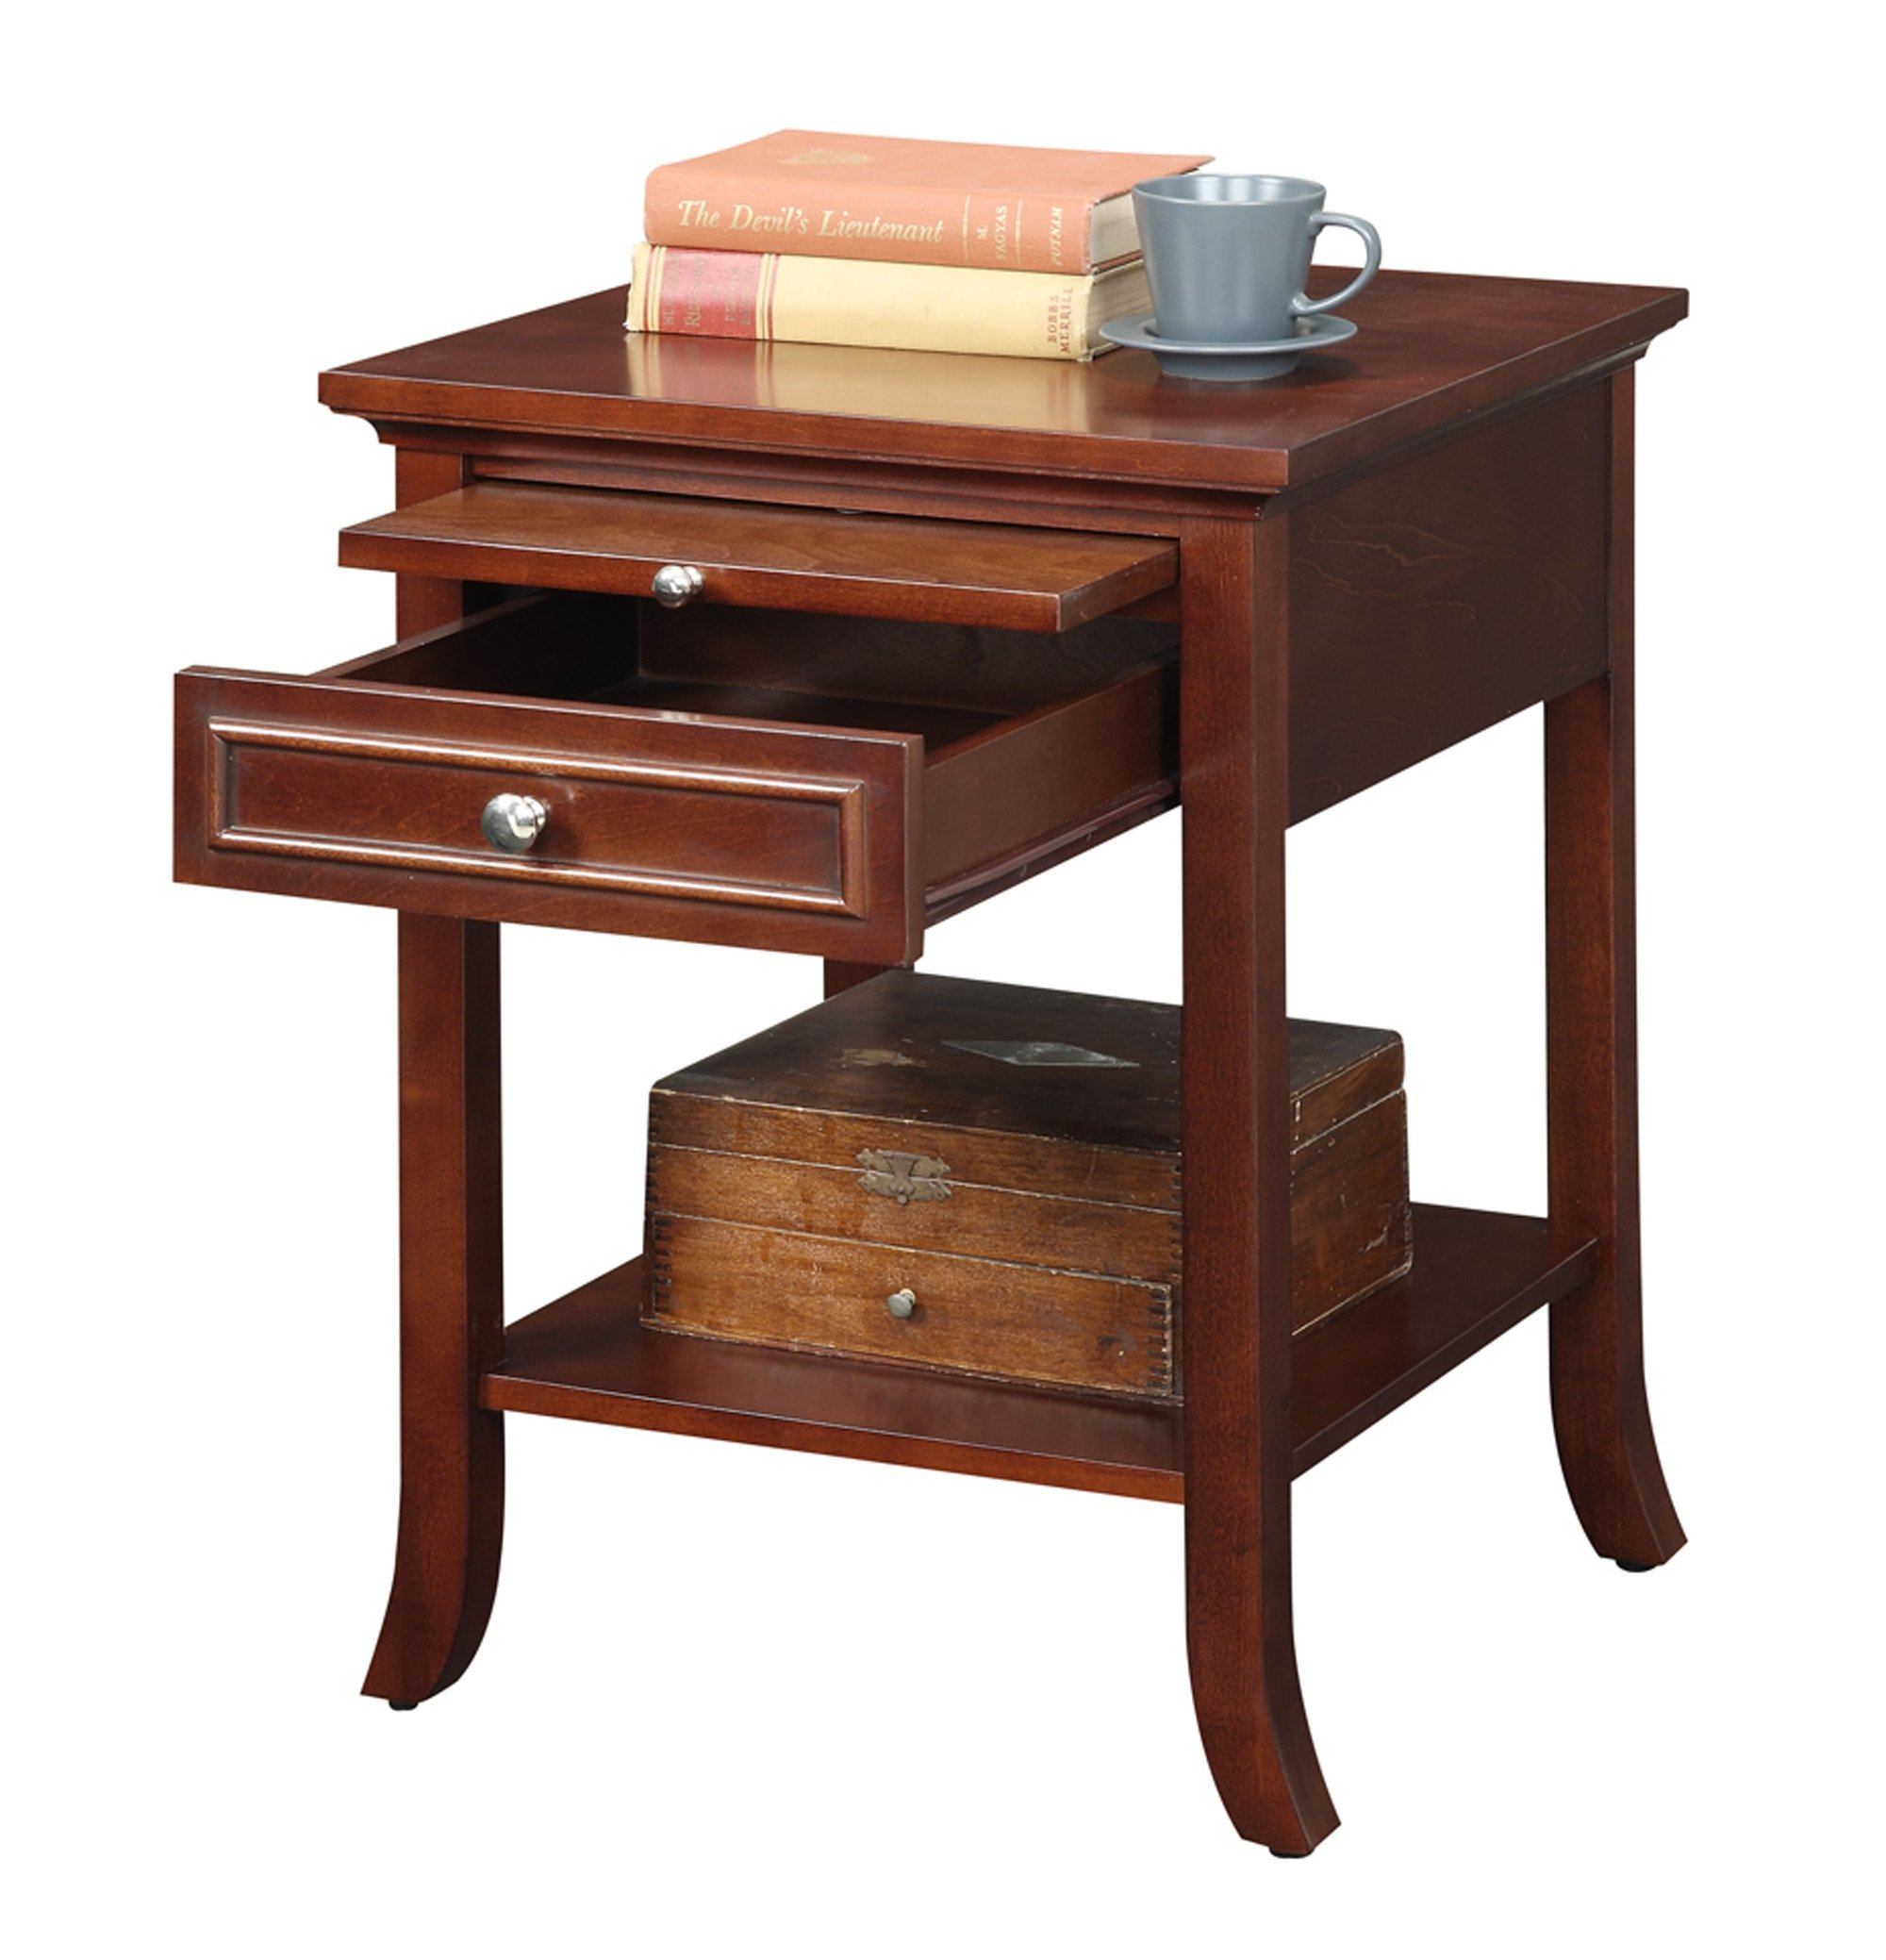 Convenience Concepts American Heritage Collection Logan End Table with Drawer and Slide, Mahogany by Convenience Concepts (Image #2)